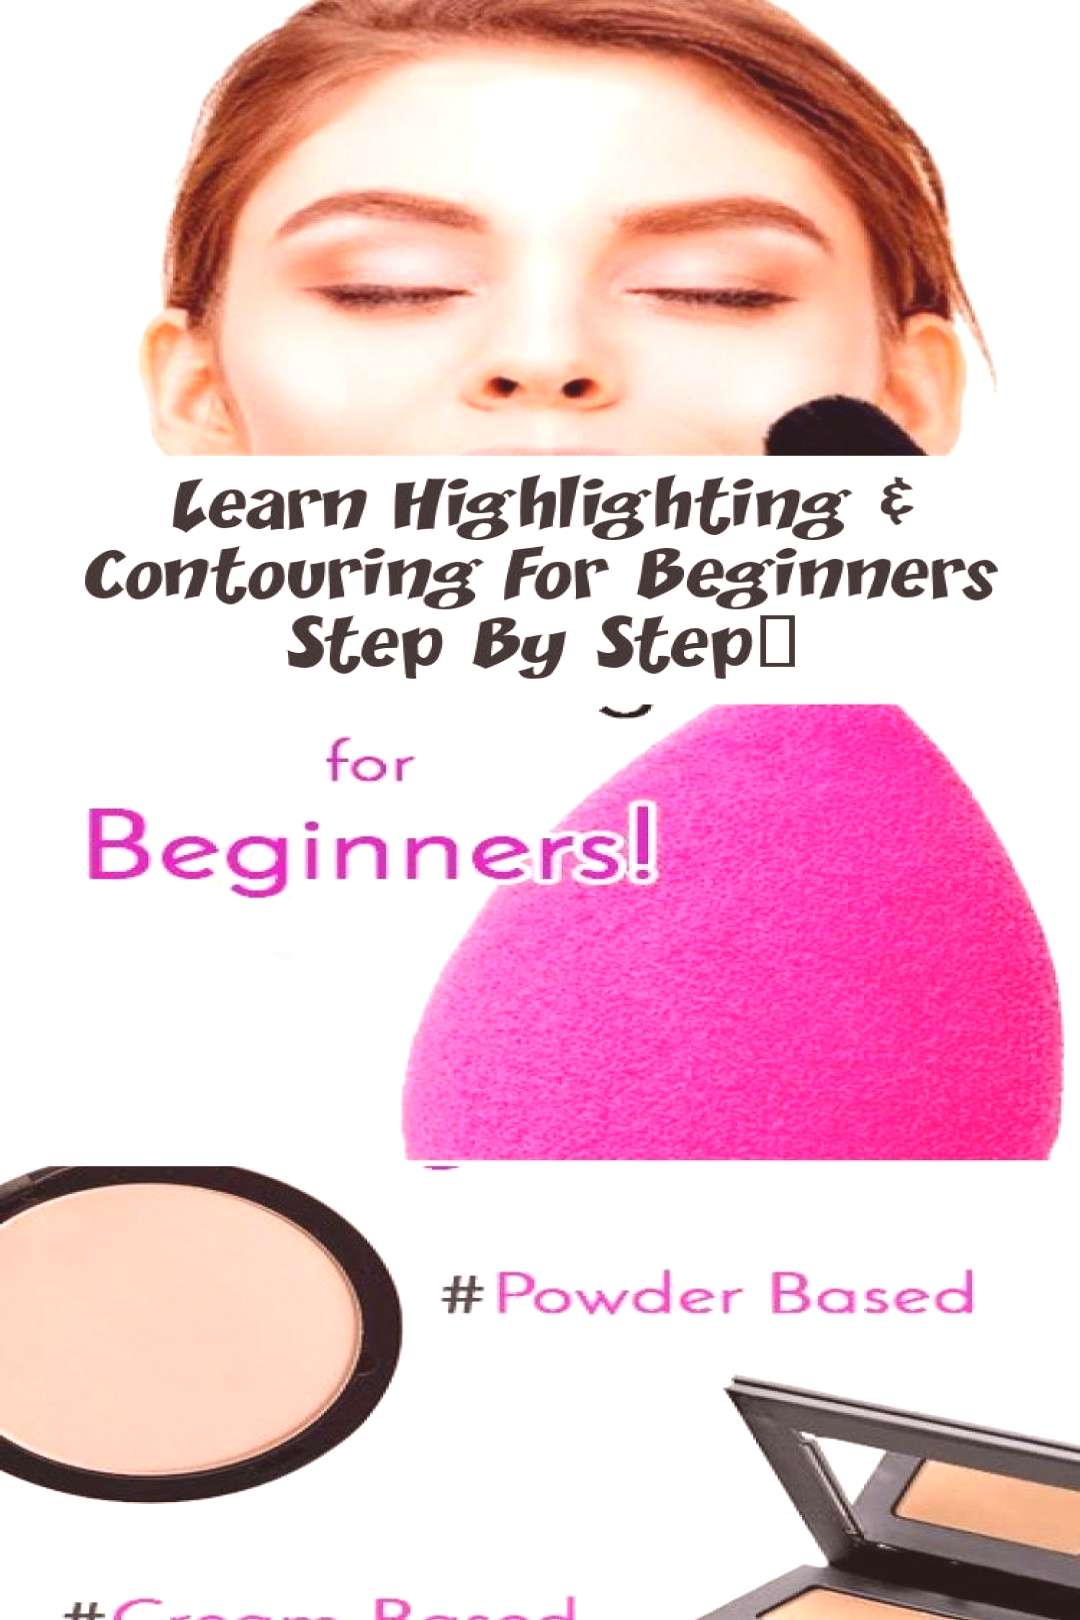 Learn step-by-step highlighting and contouring for beginners ... - Learn how to highlight and cont